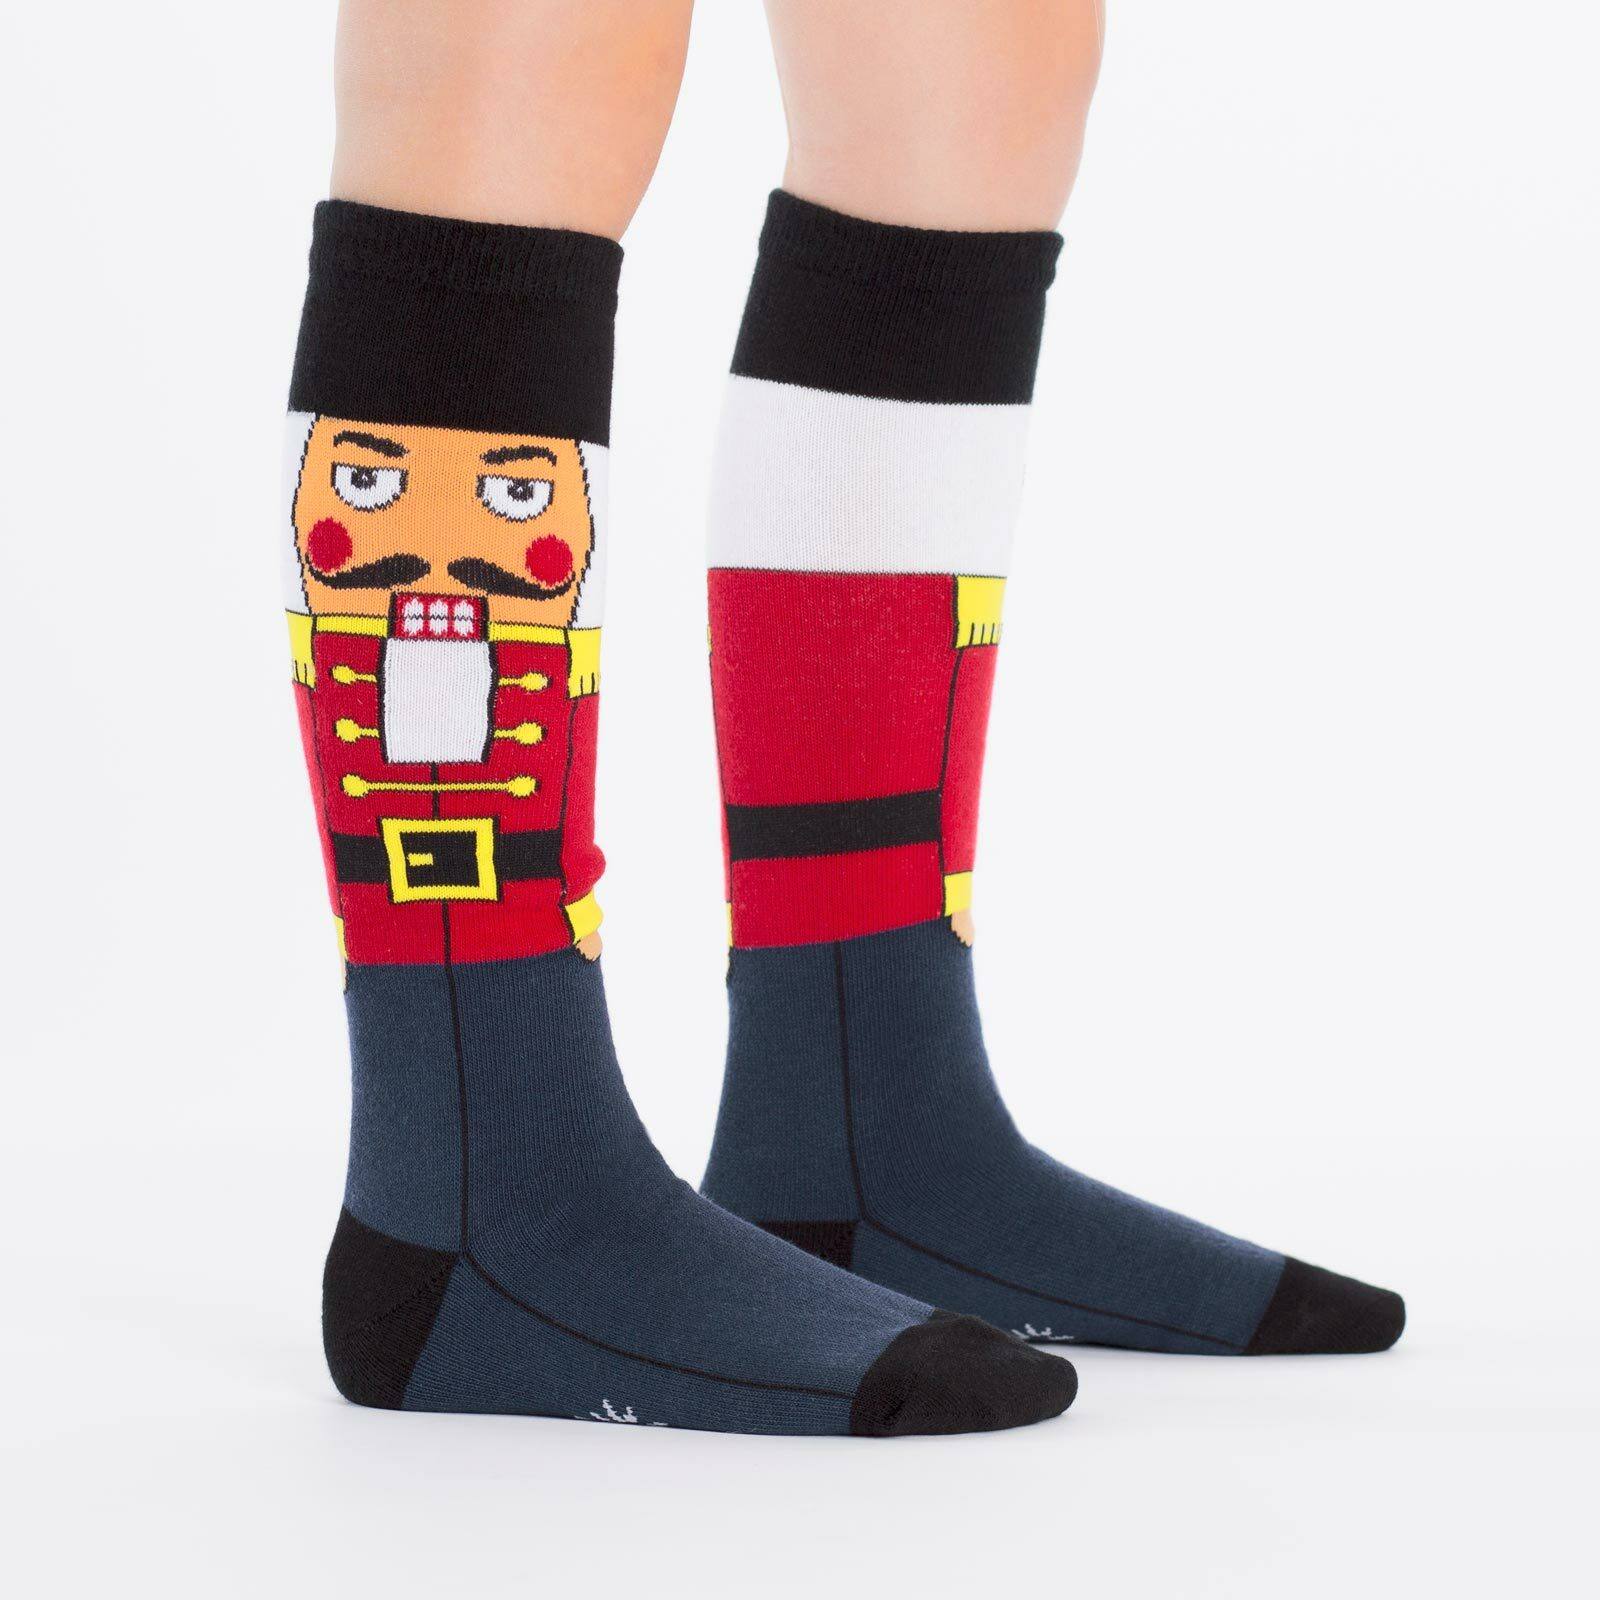 model side view of Nutcracker - Classic Holiday Wooden Nutcracker Soldier Knee High Socks Navy Blue - Youth